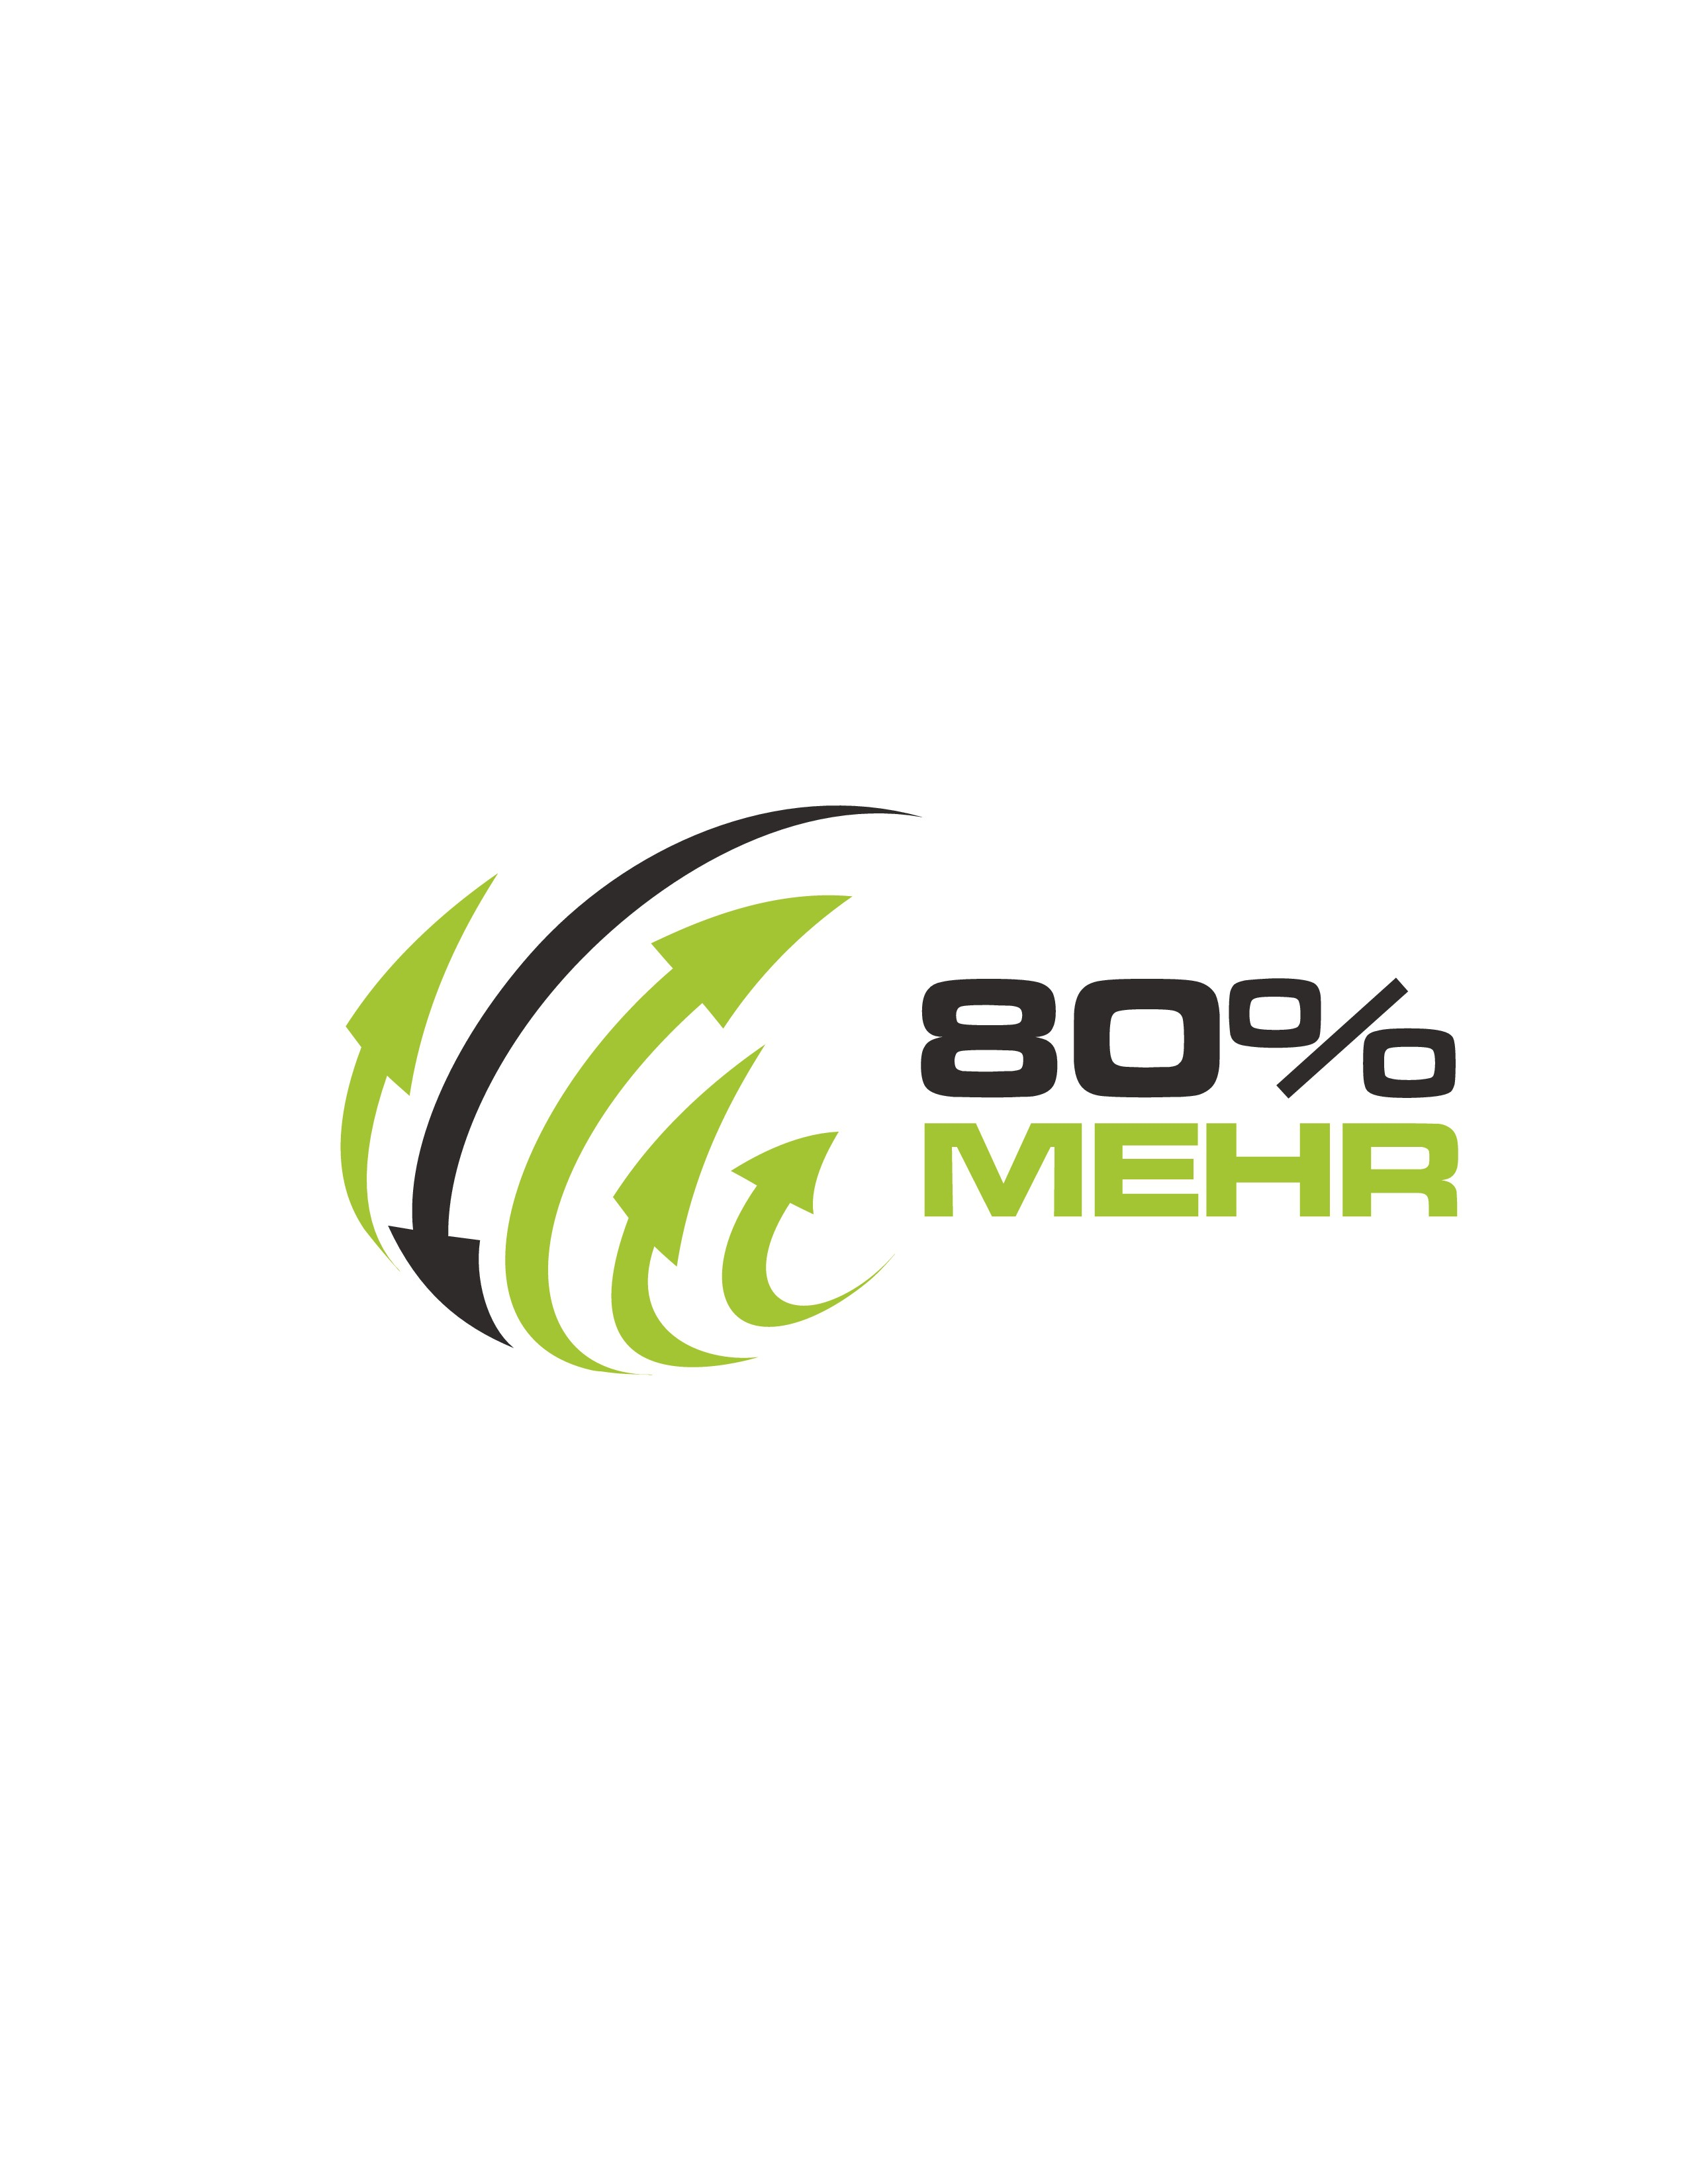 80% mehr - assist me by inspiring others to make the world a little bit better!